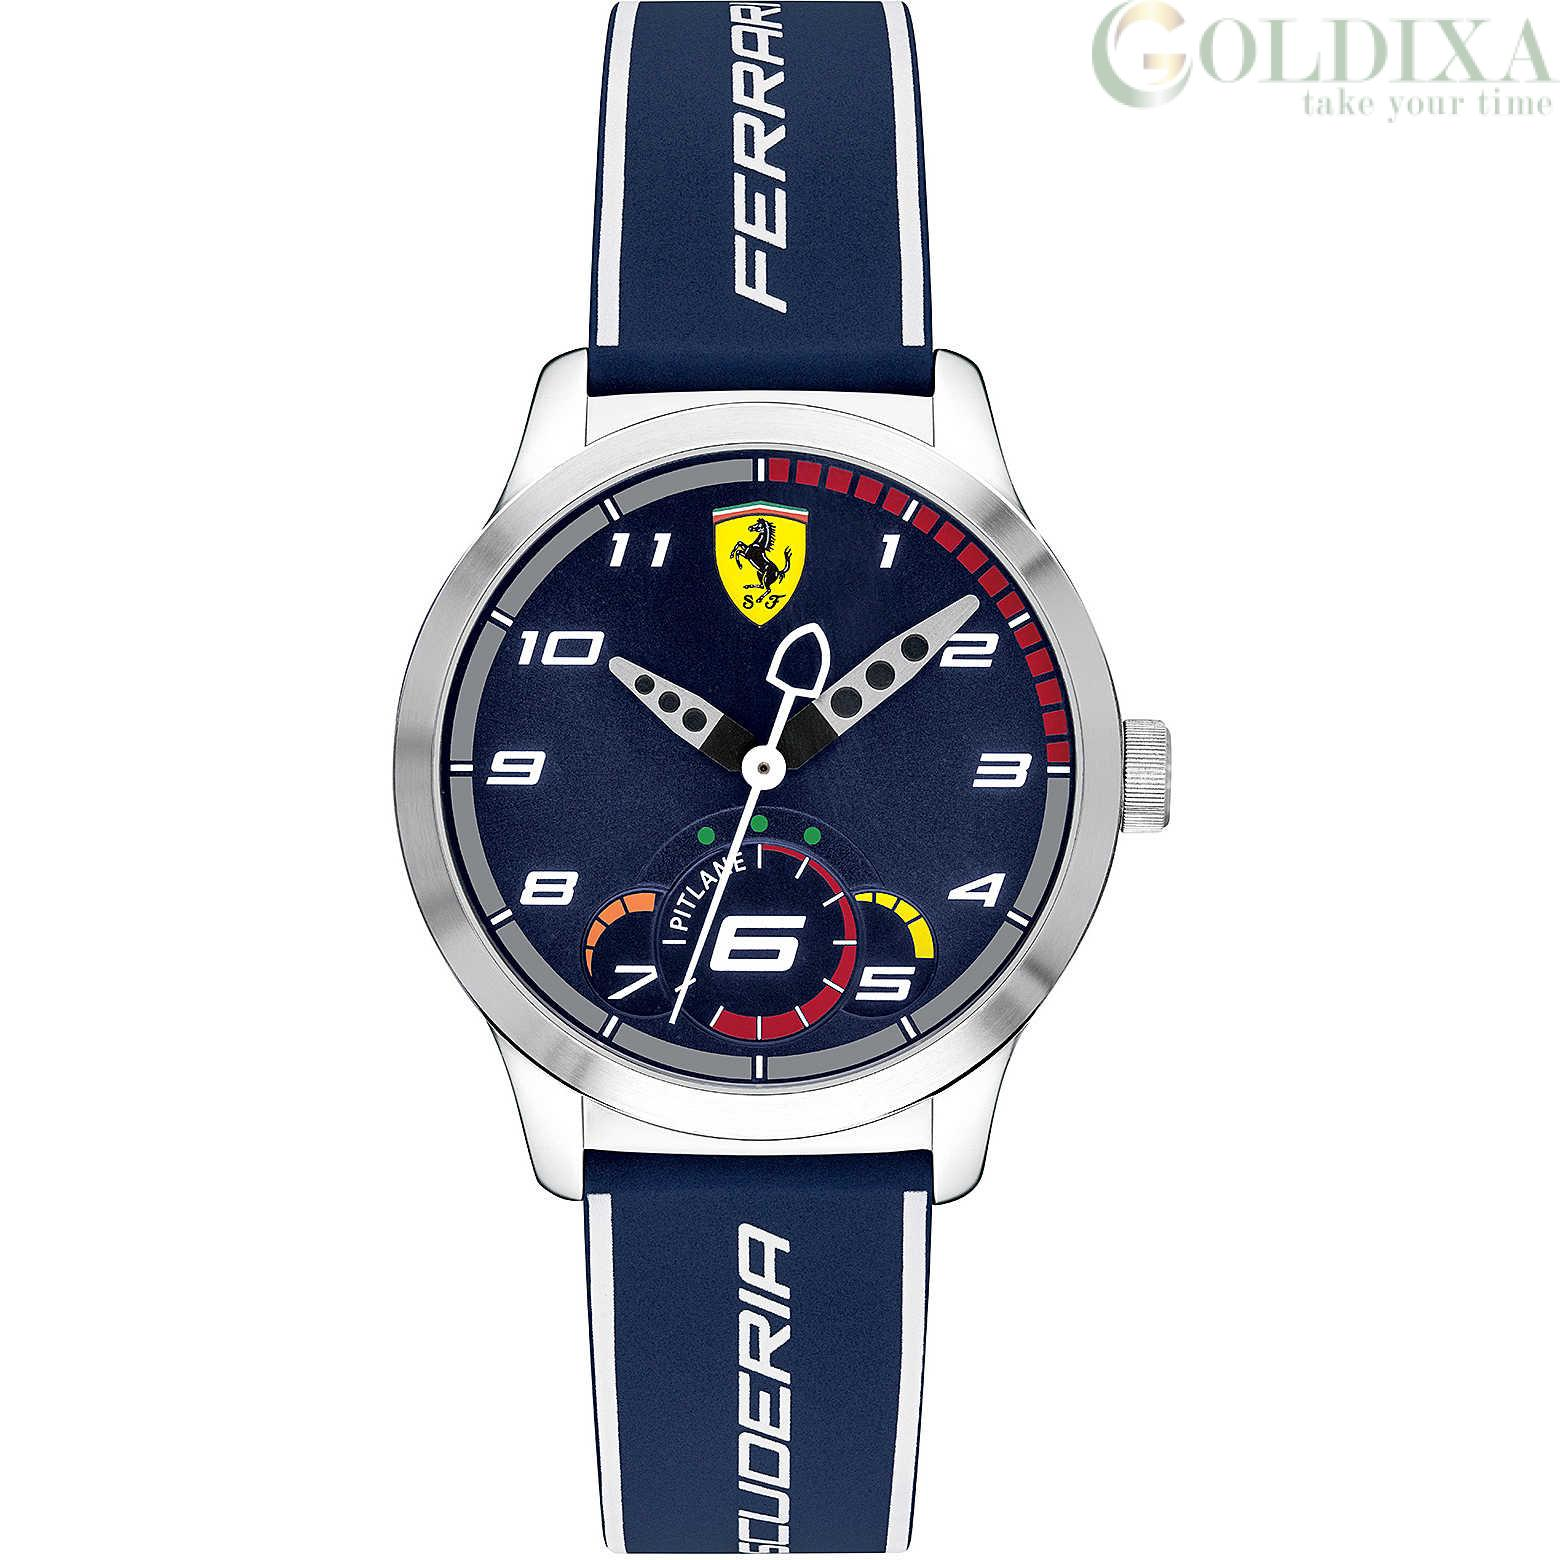 Watches Scuderia Ferrari Time Only Watch Fer0860005 Analogue Steel Pitlane